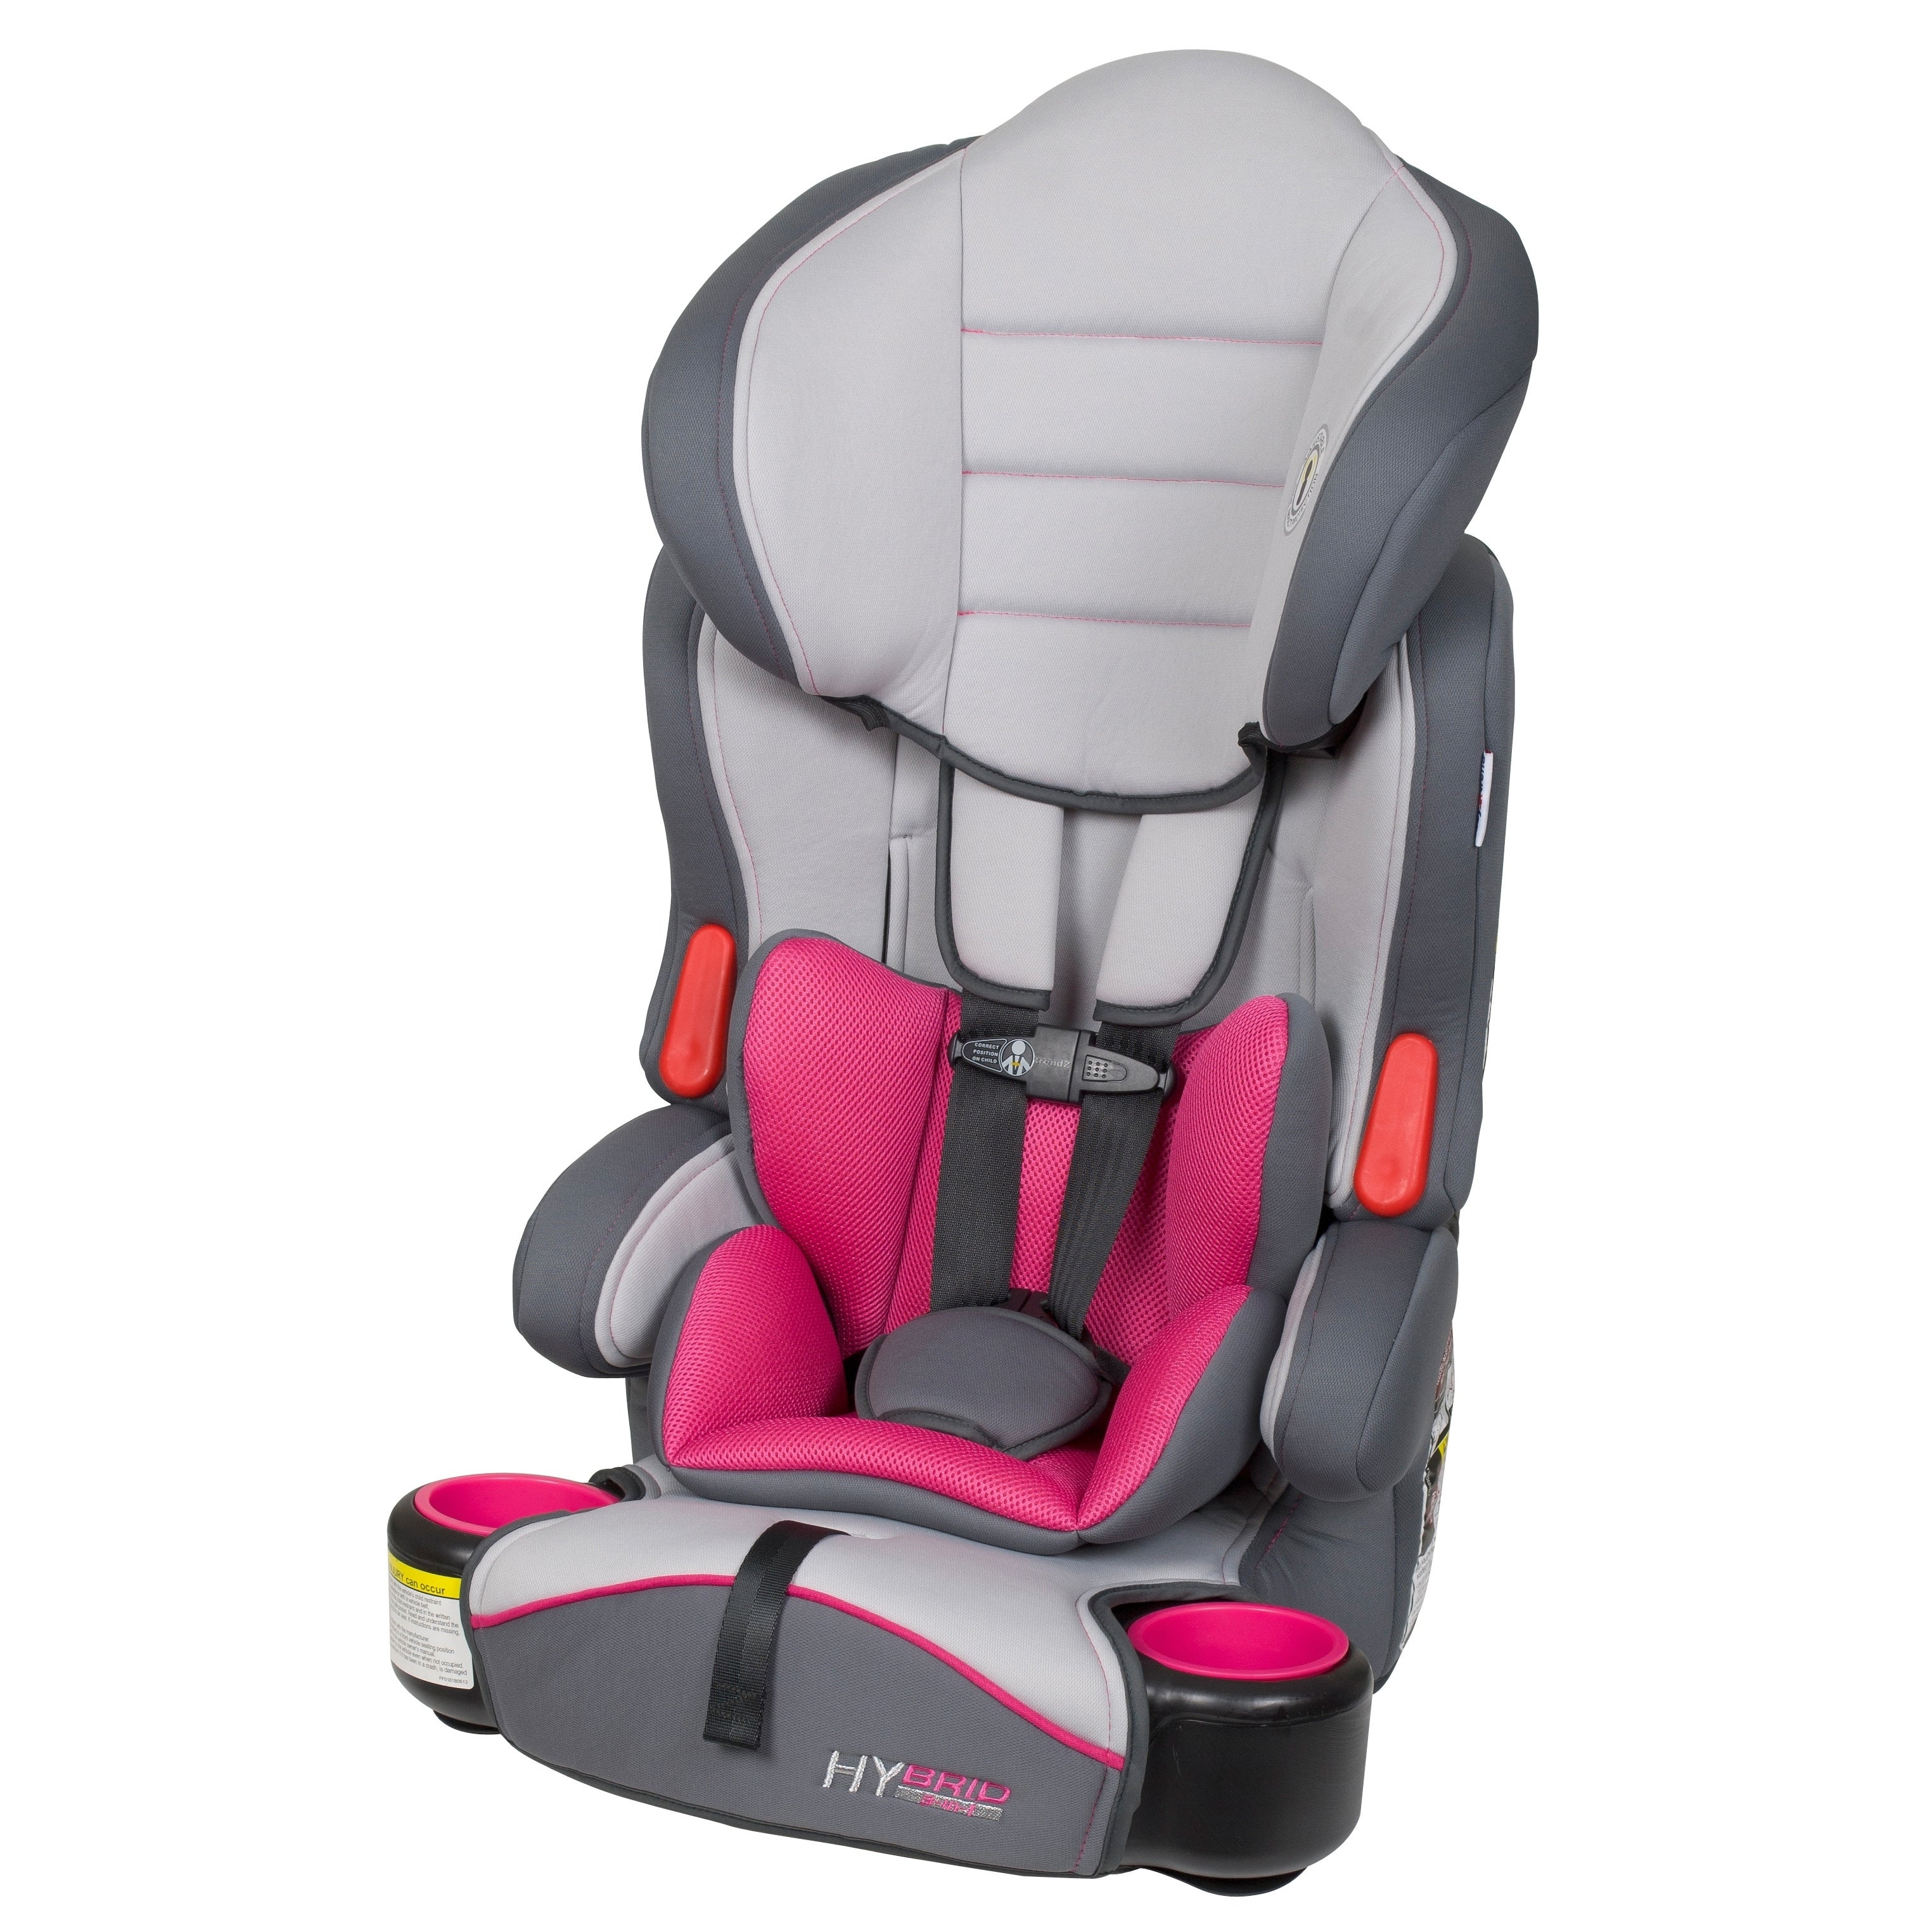 867a44d15e4 Shop Baby Trend Hybrid 3-in-1 Car Seat